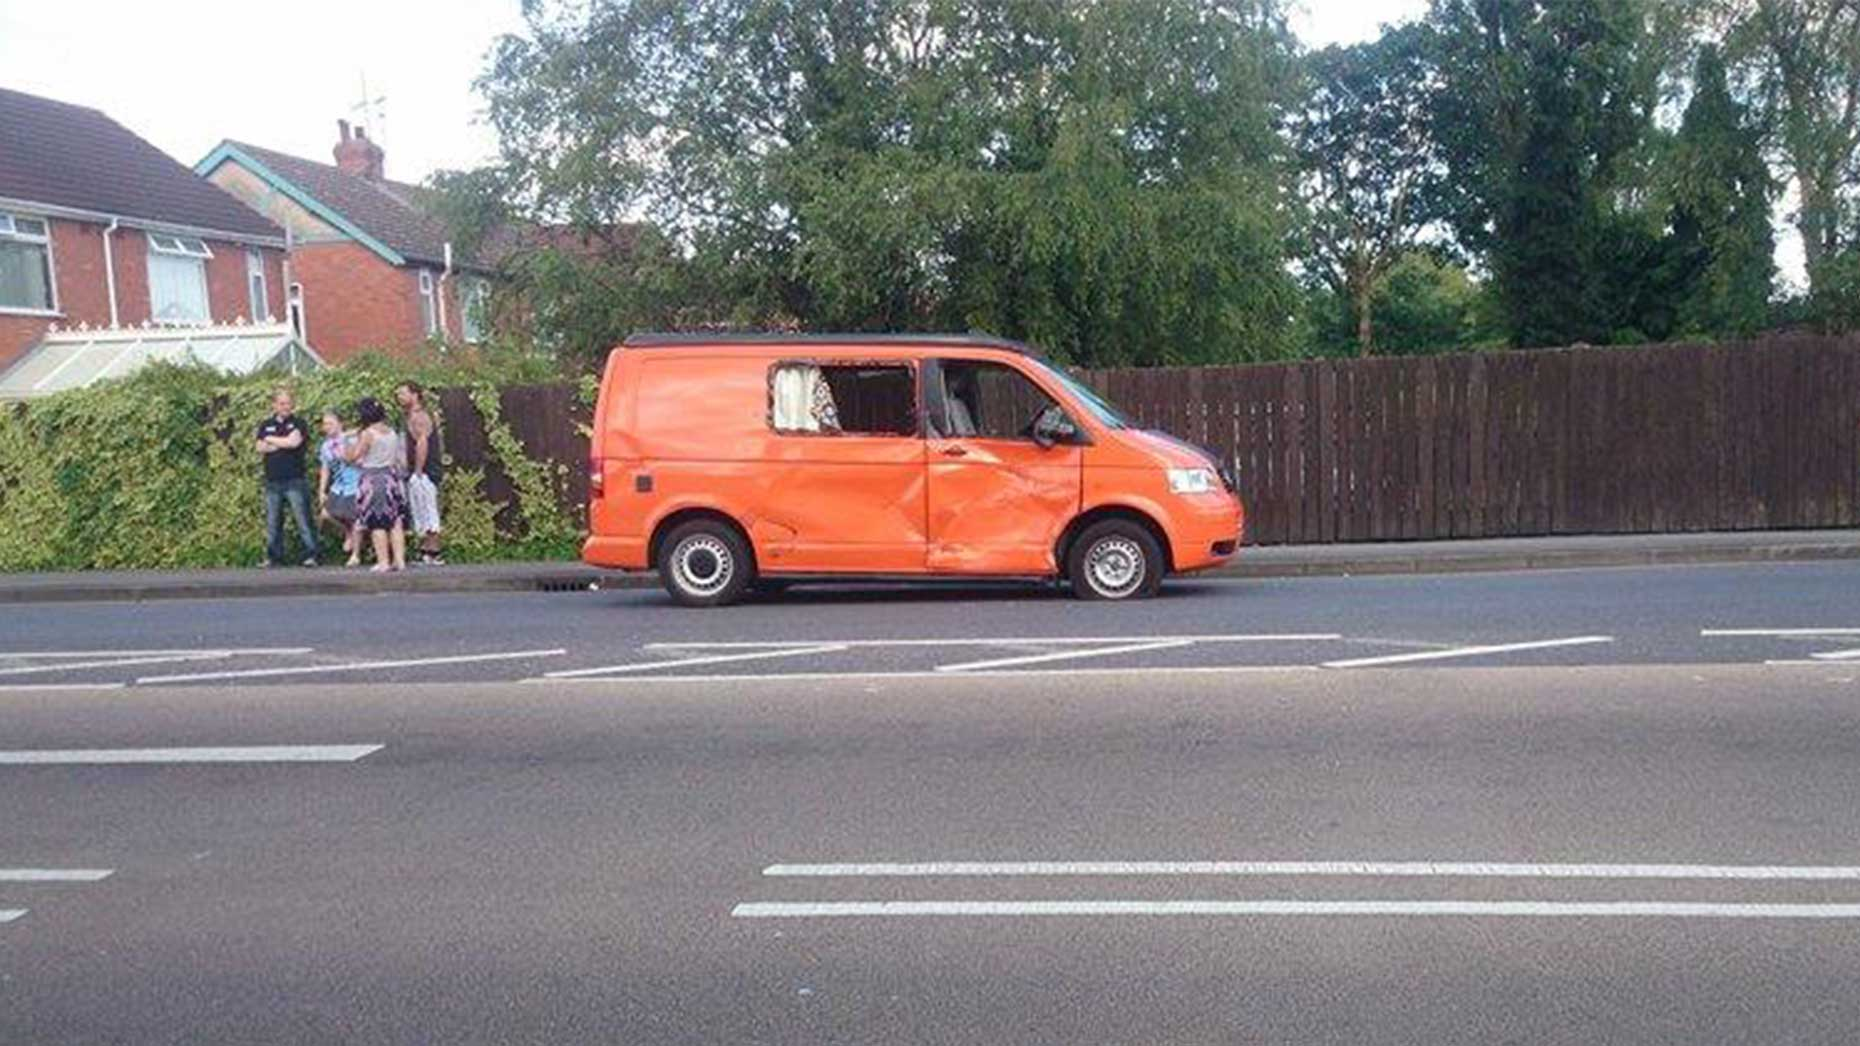 An orange van was also involved in the collision. Photo: Rex Helley